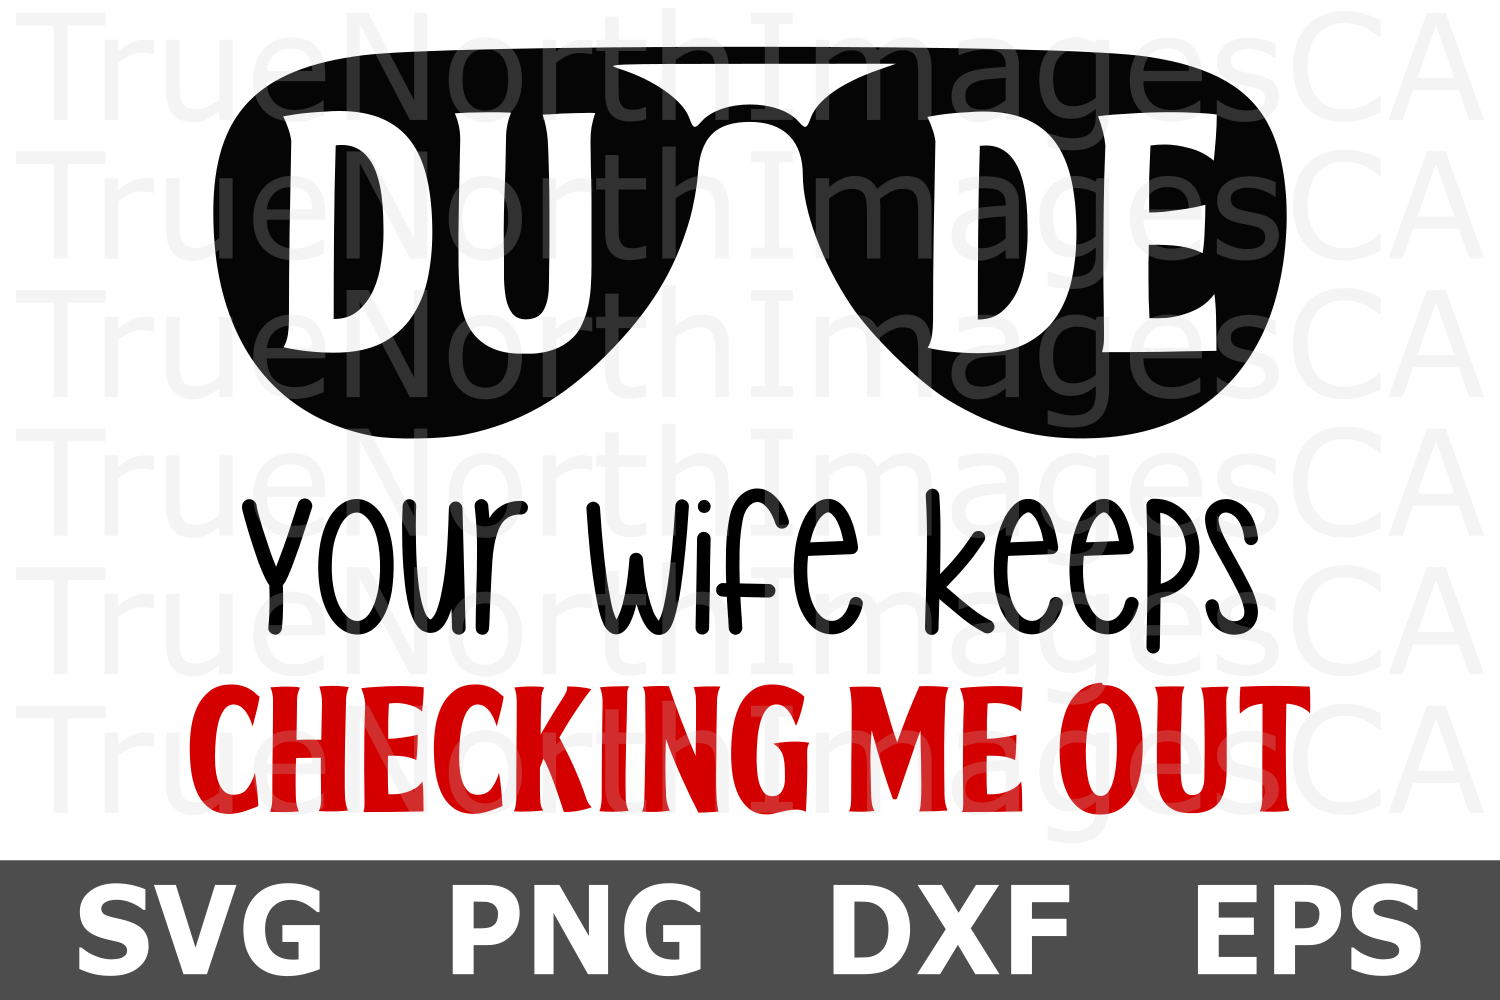 Dude Your Wife Keeps Checking Me Out - A Baby SVG Cut File example image 2